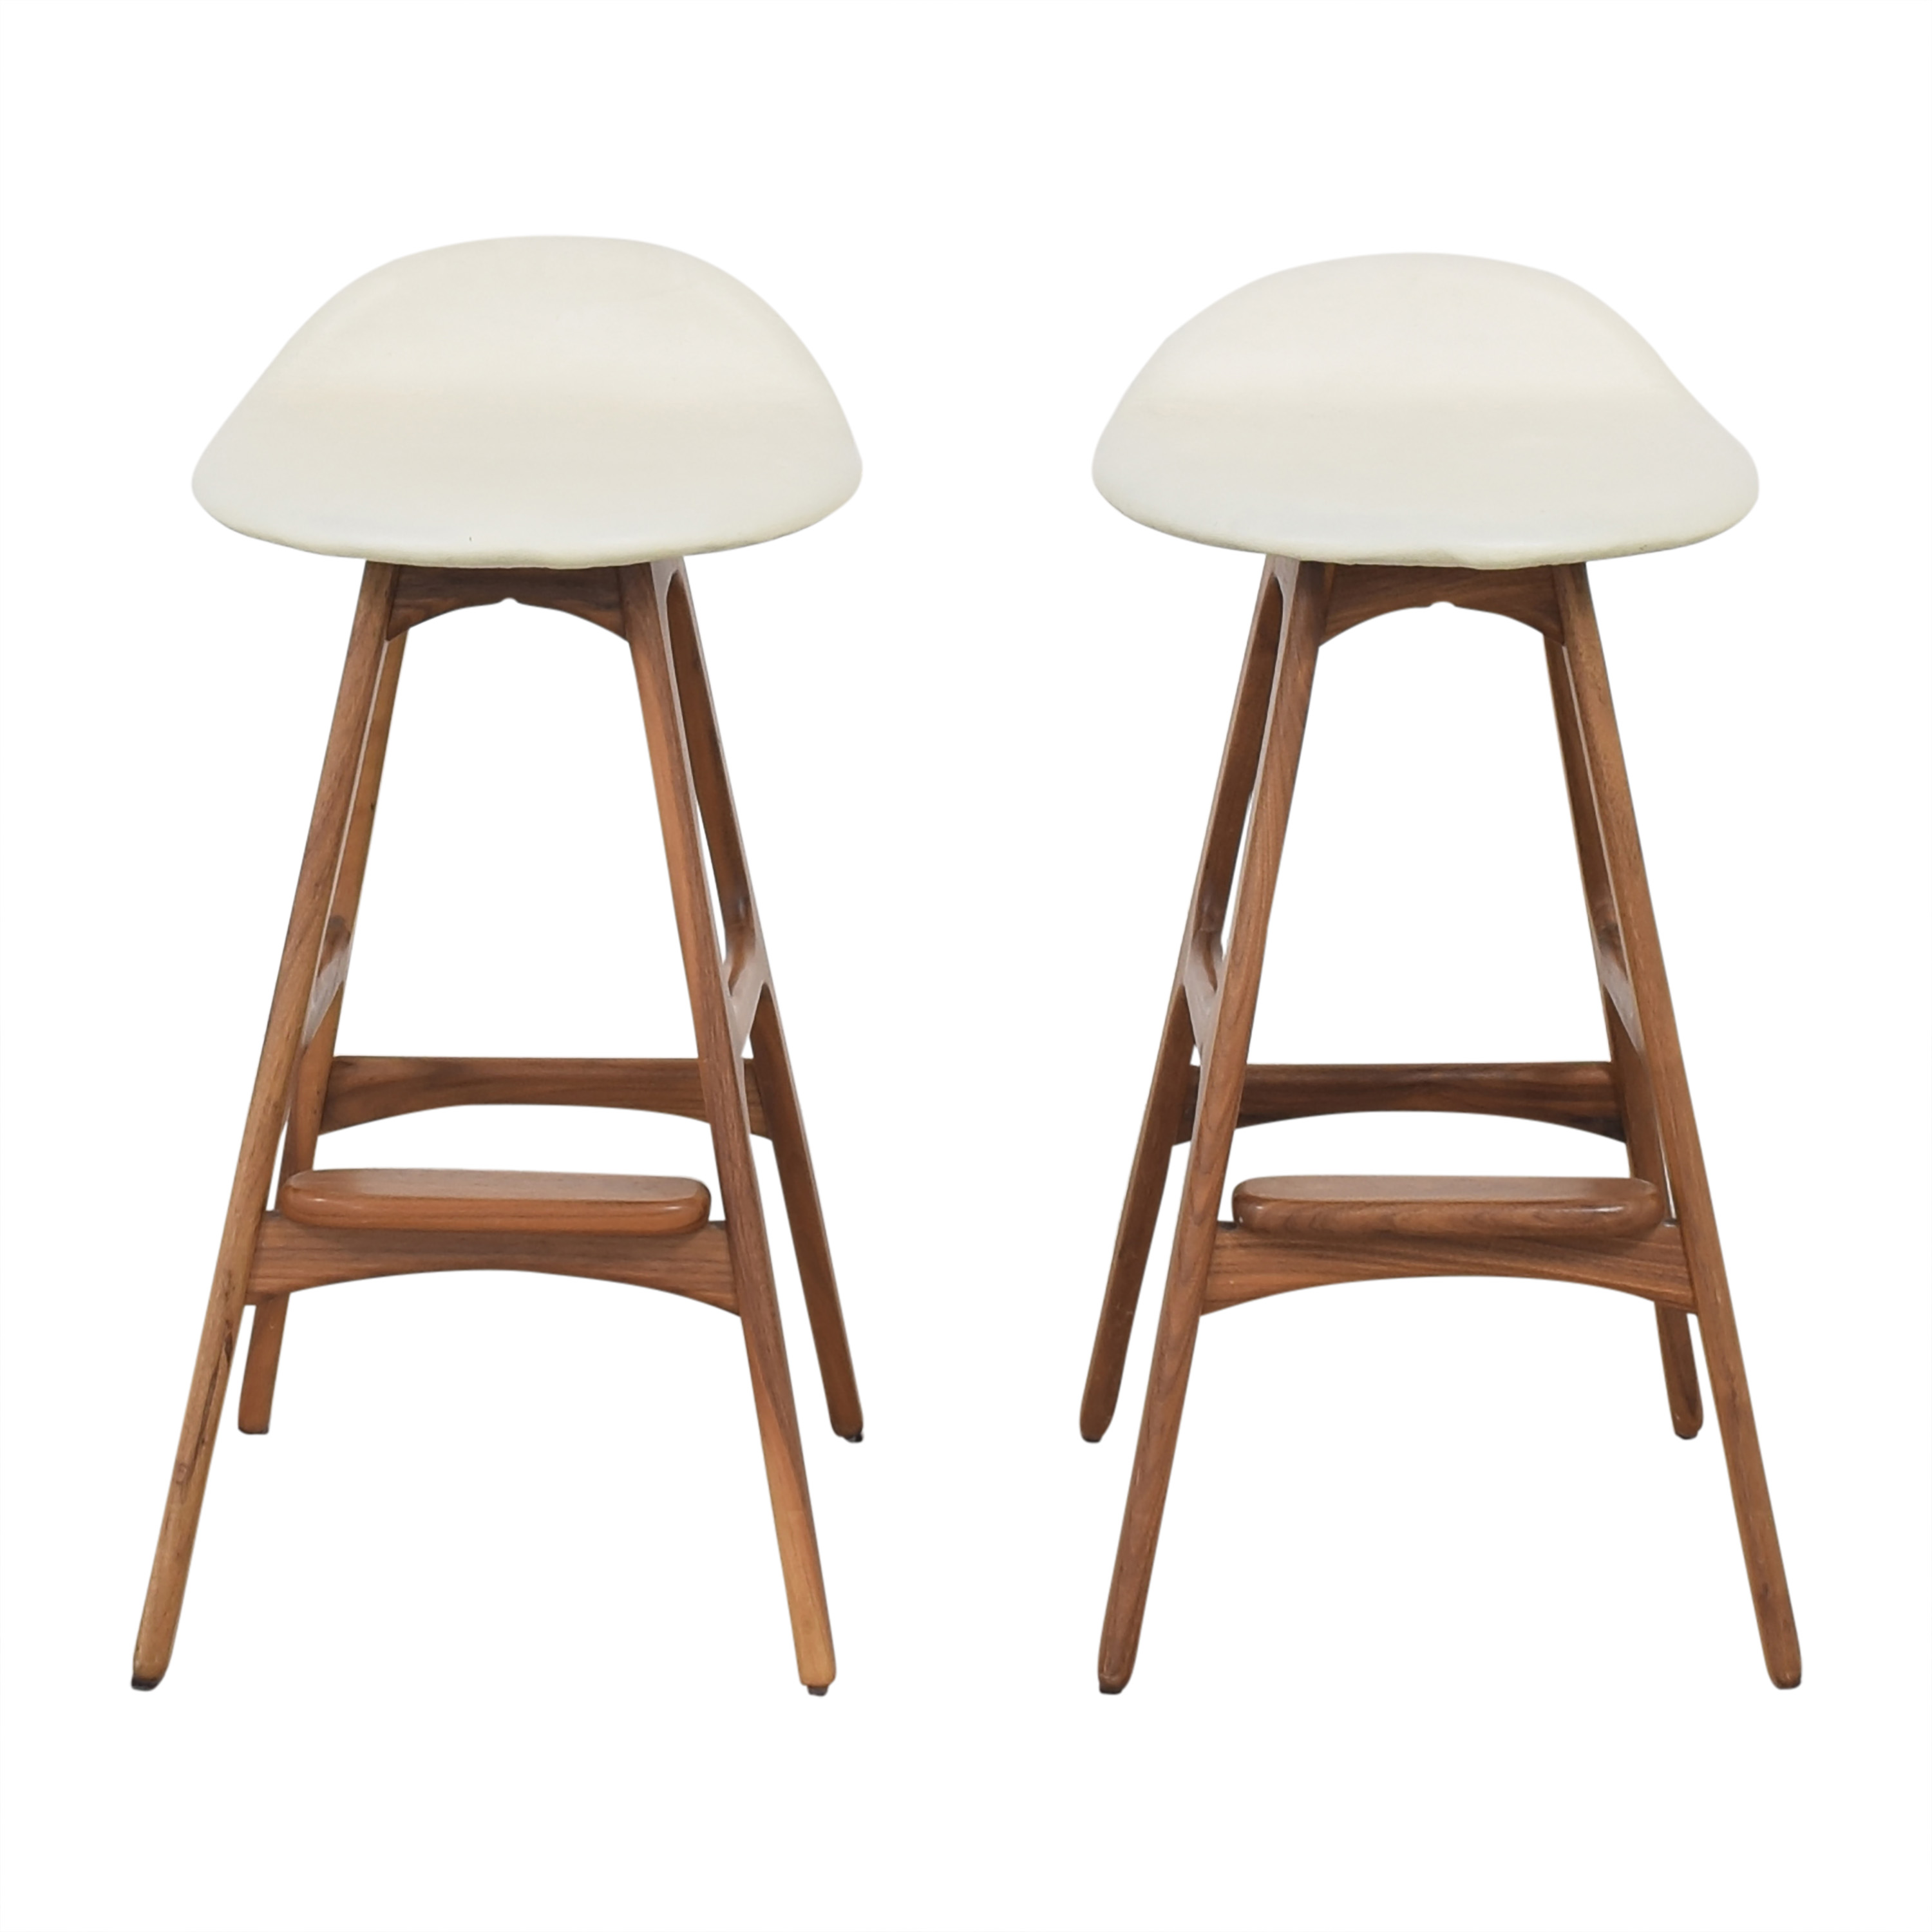 Organic Modernism Organic Modernism Saddle Counter Stool for sale